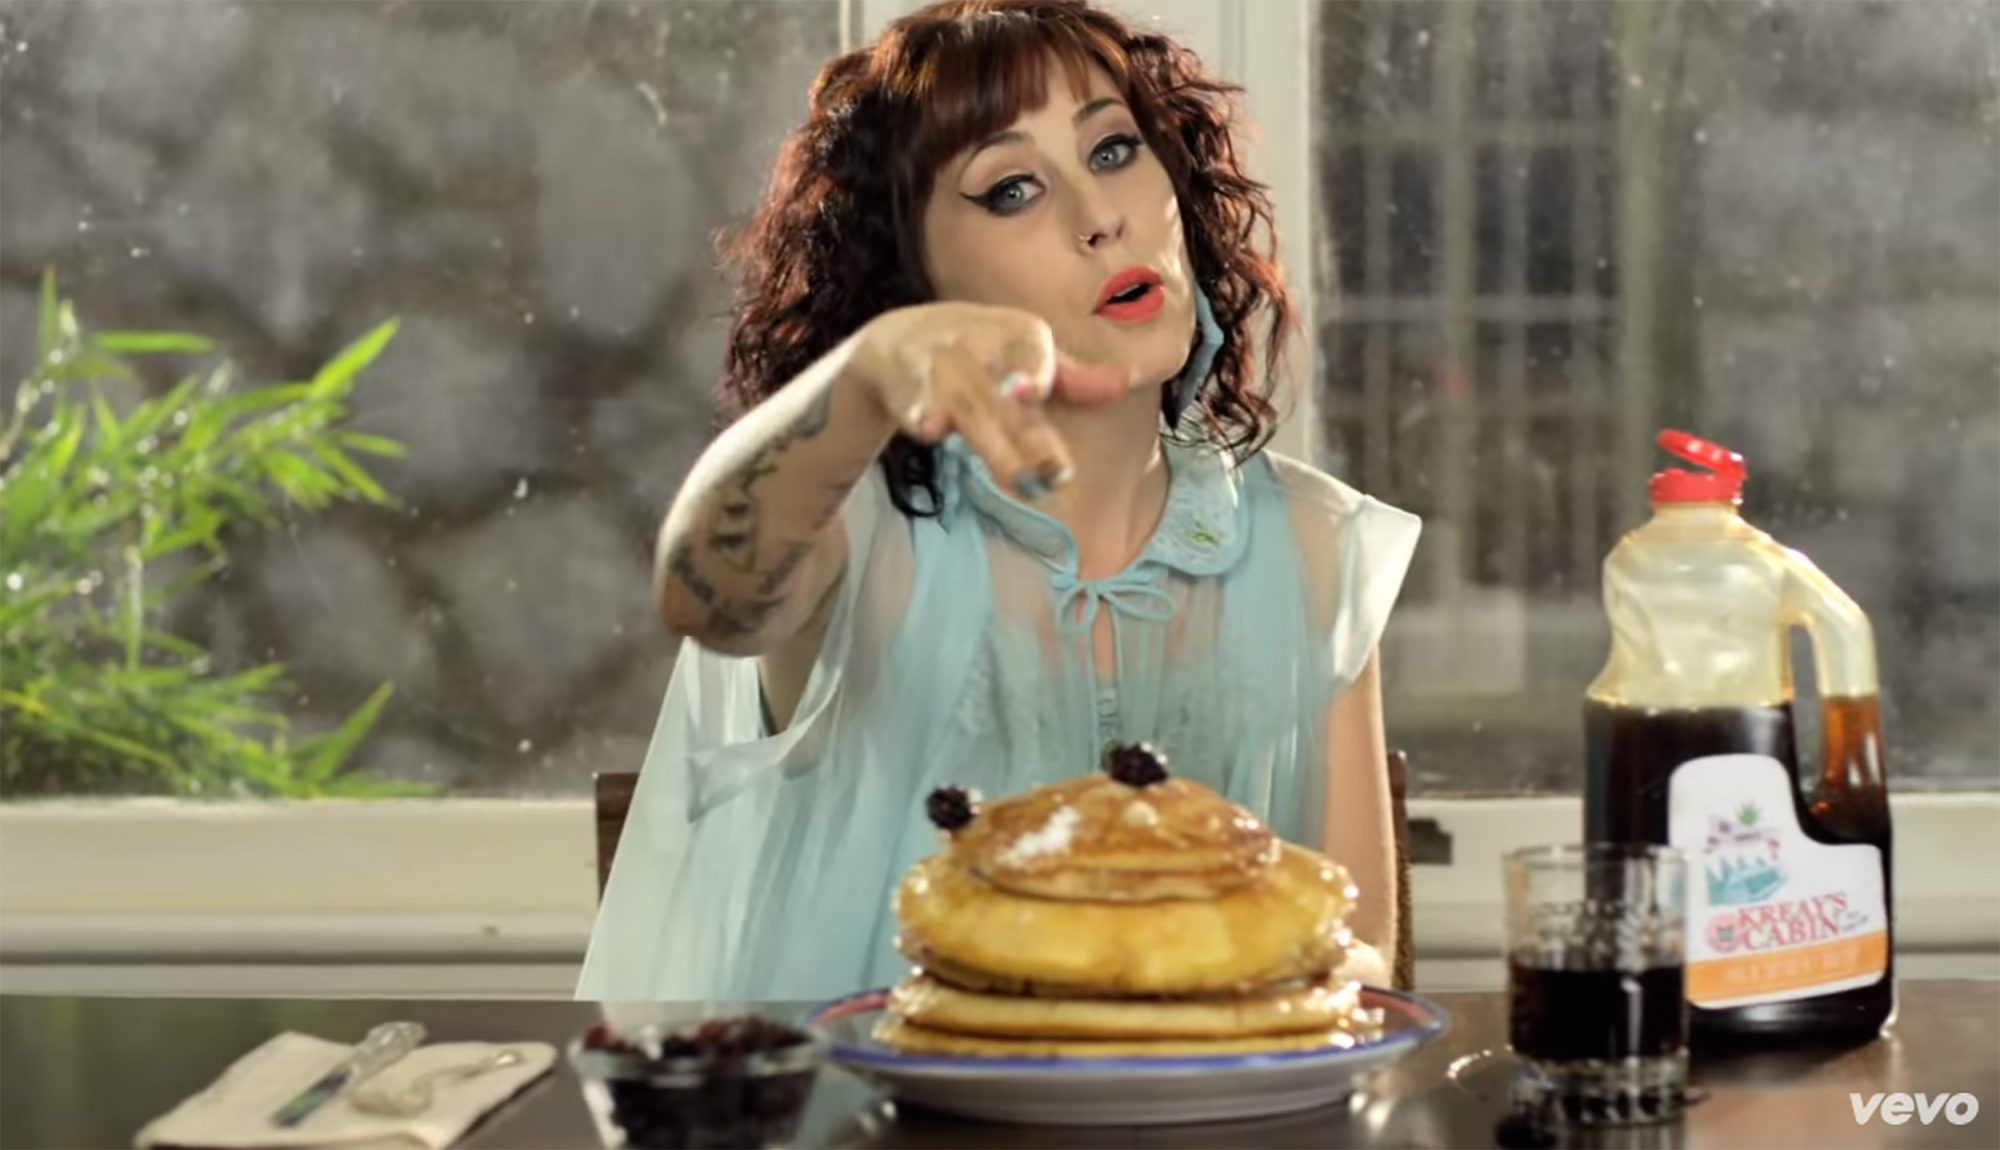 EC: 13 Rap Songs About Breakfast